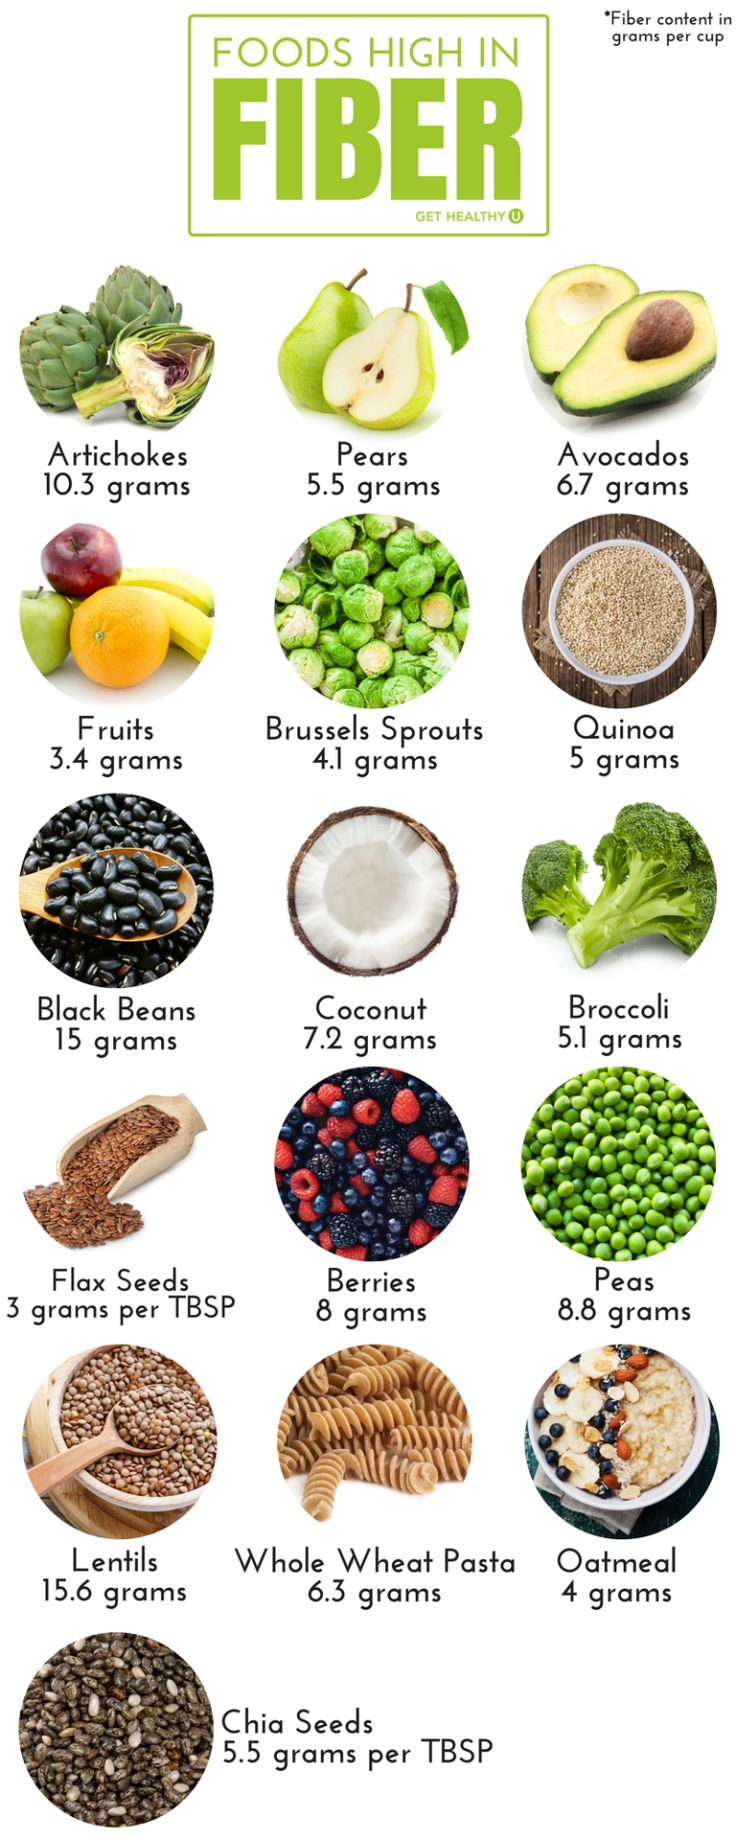 Check out these foods high in fiber to help cleanse and detoxify your body after a hectic indulgent new years! #detox #cleanse #weightloss